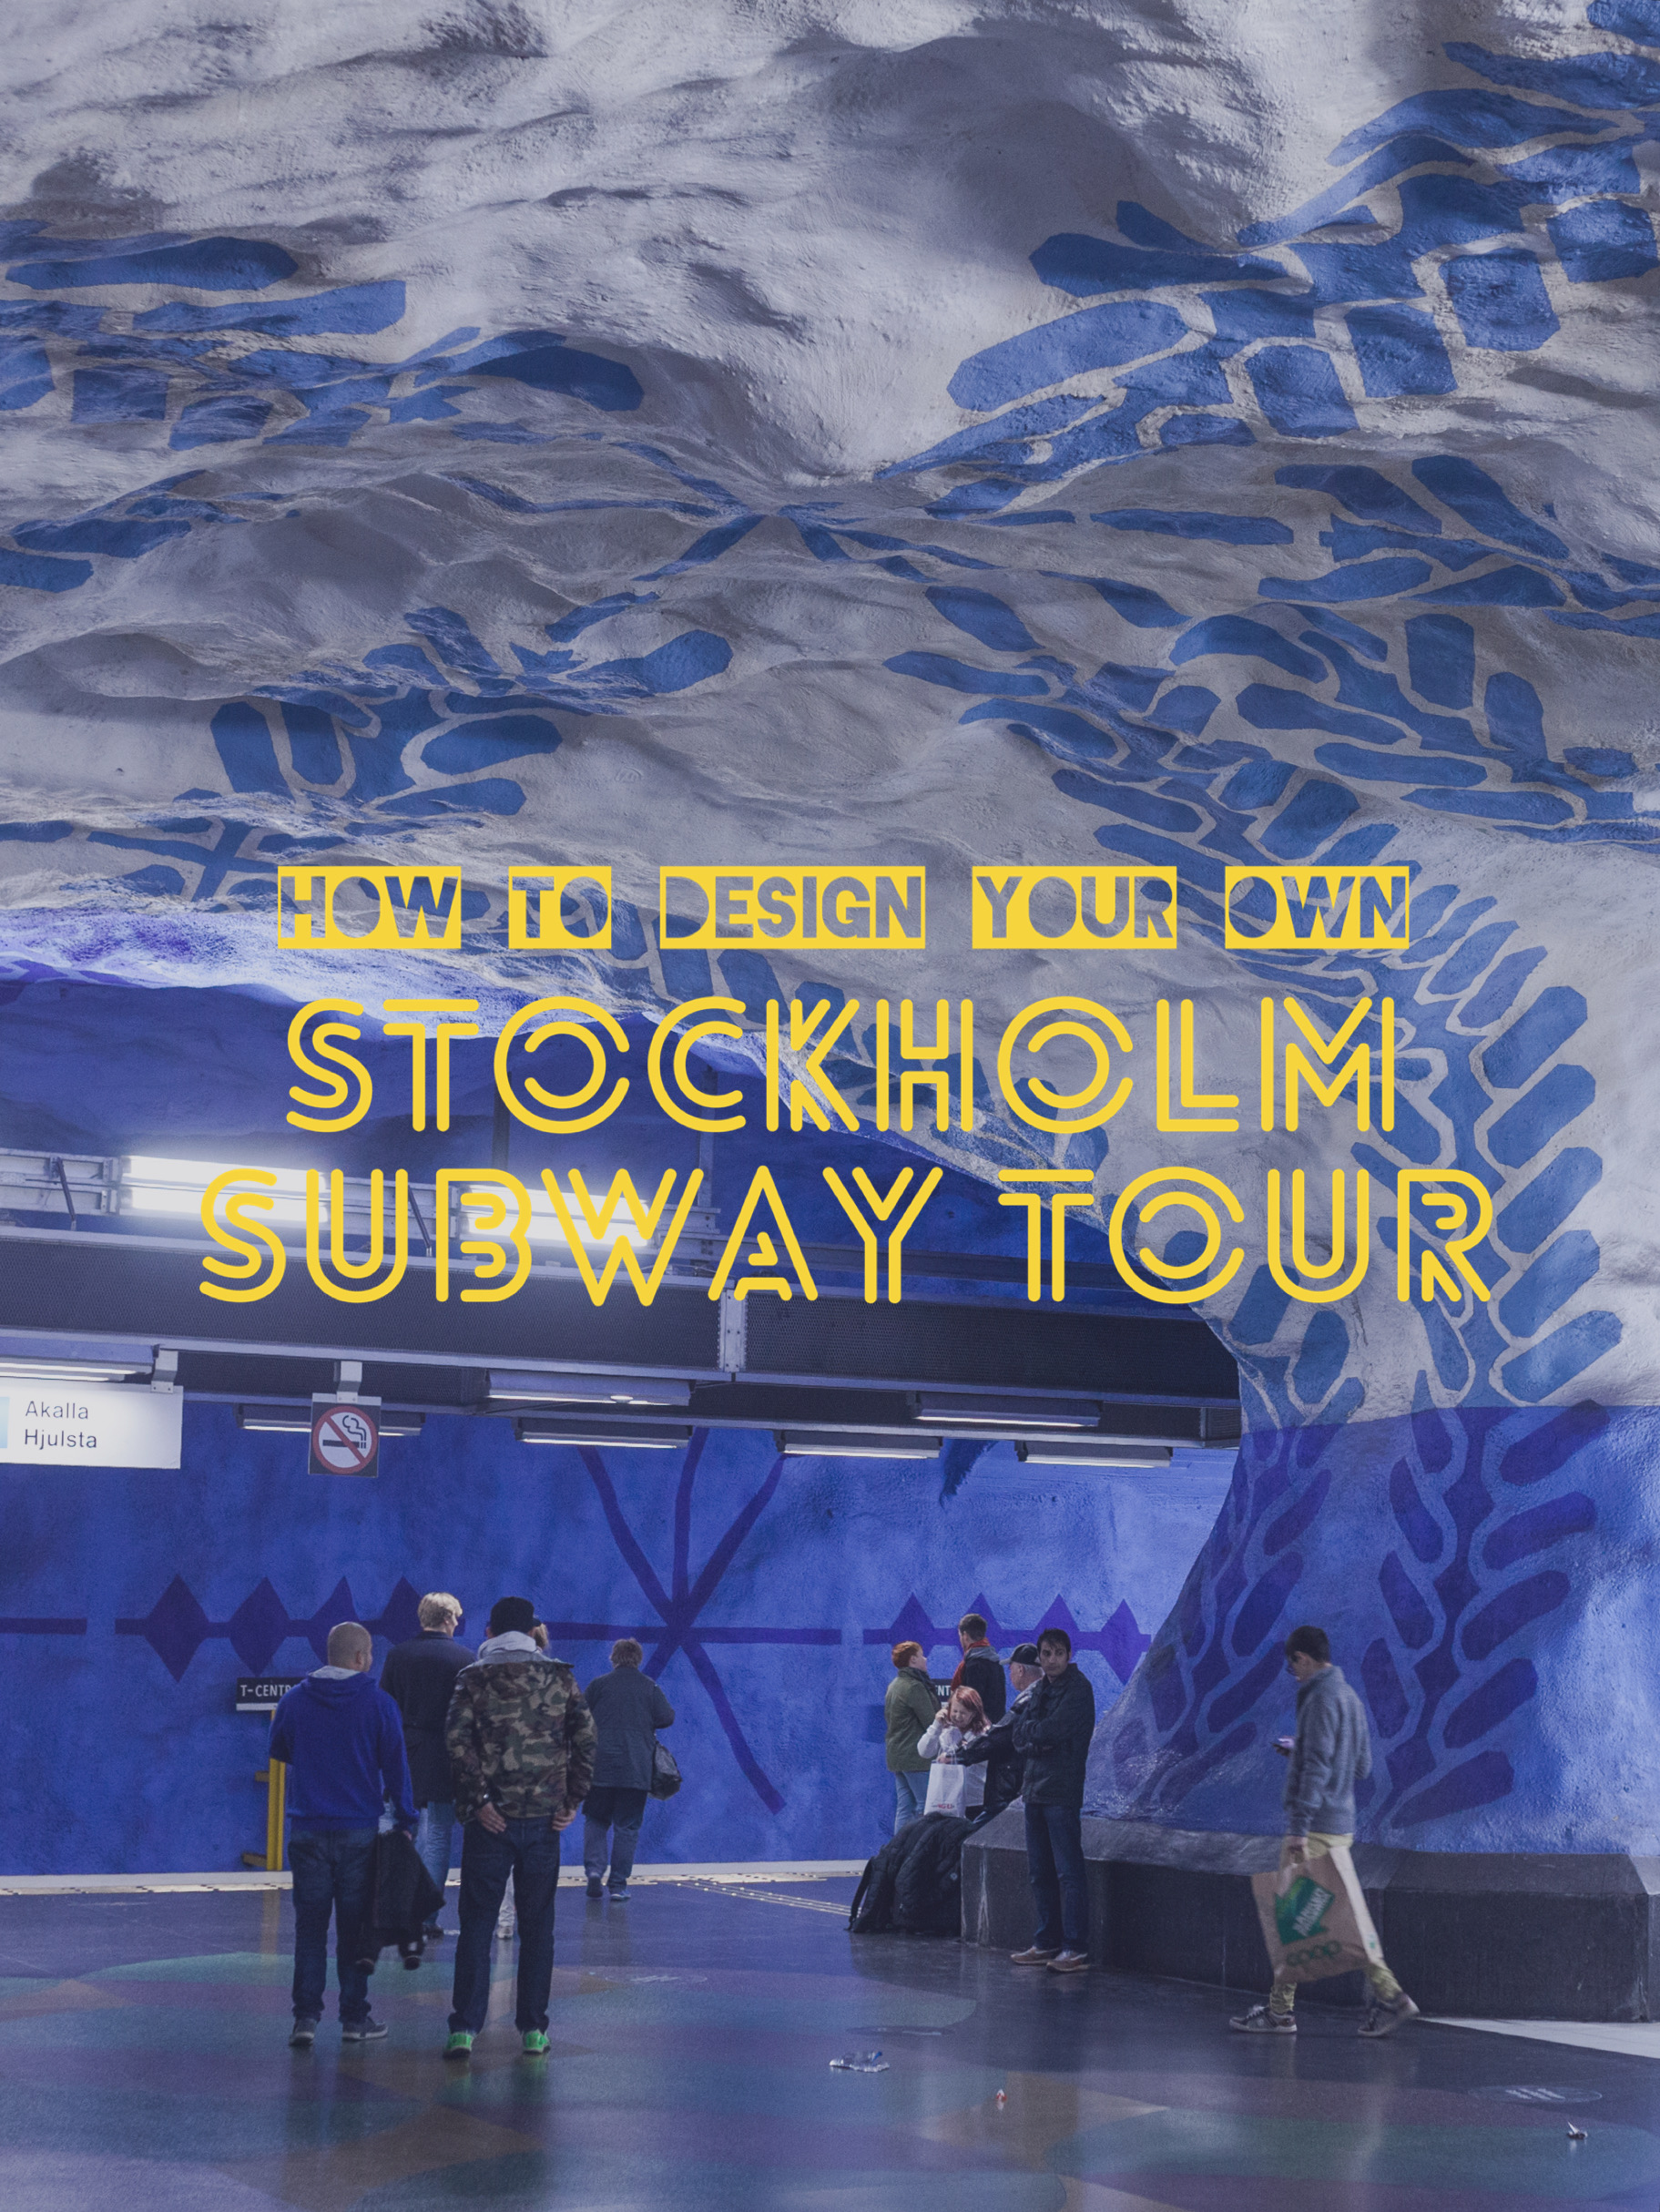 How to Design Your Perfect Subway Tour in Stockholm